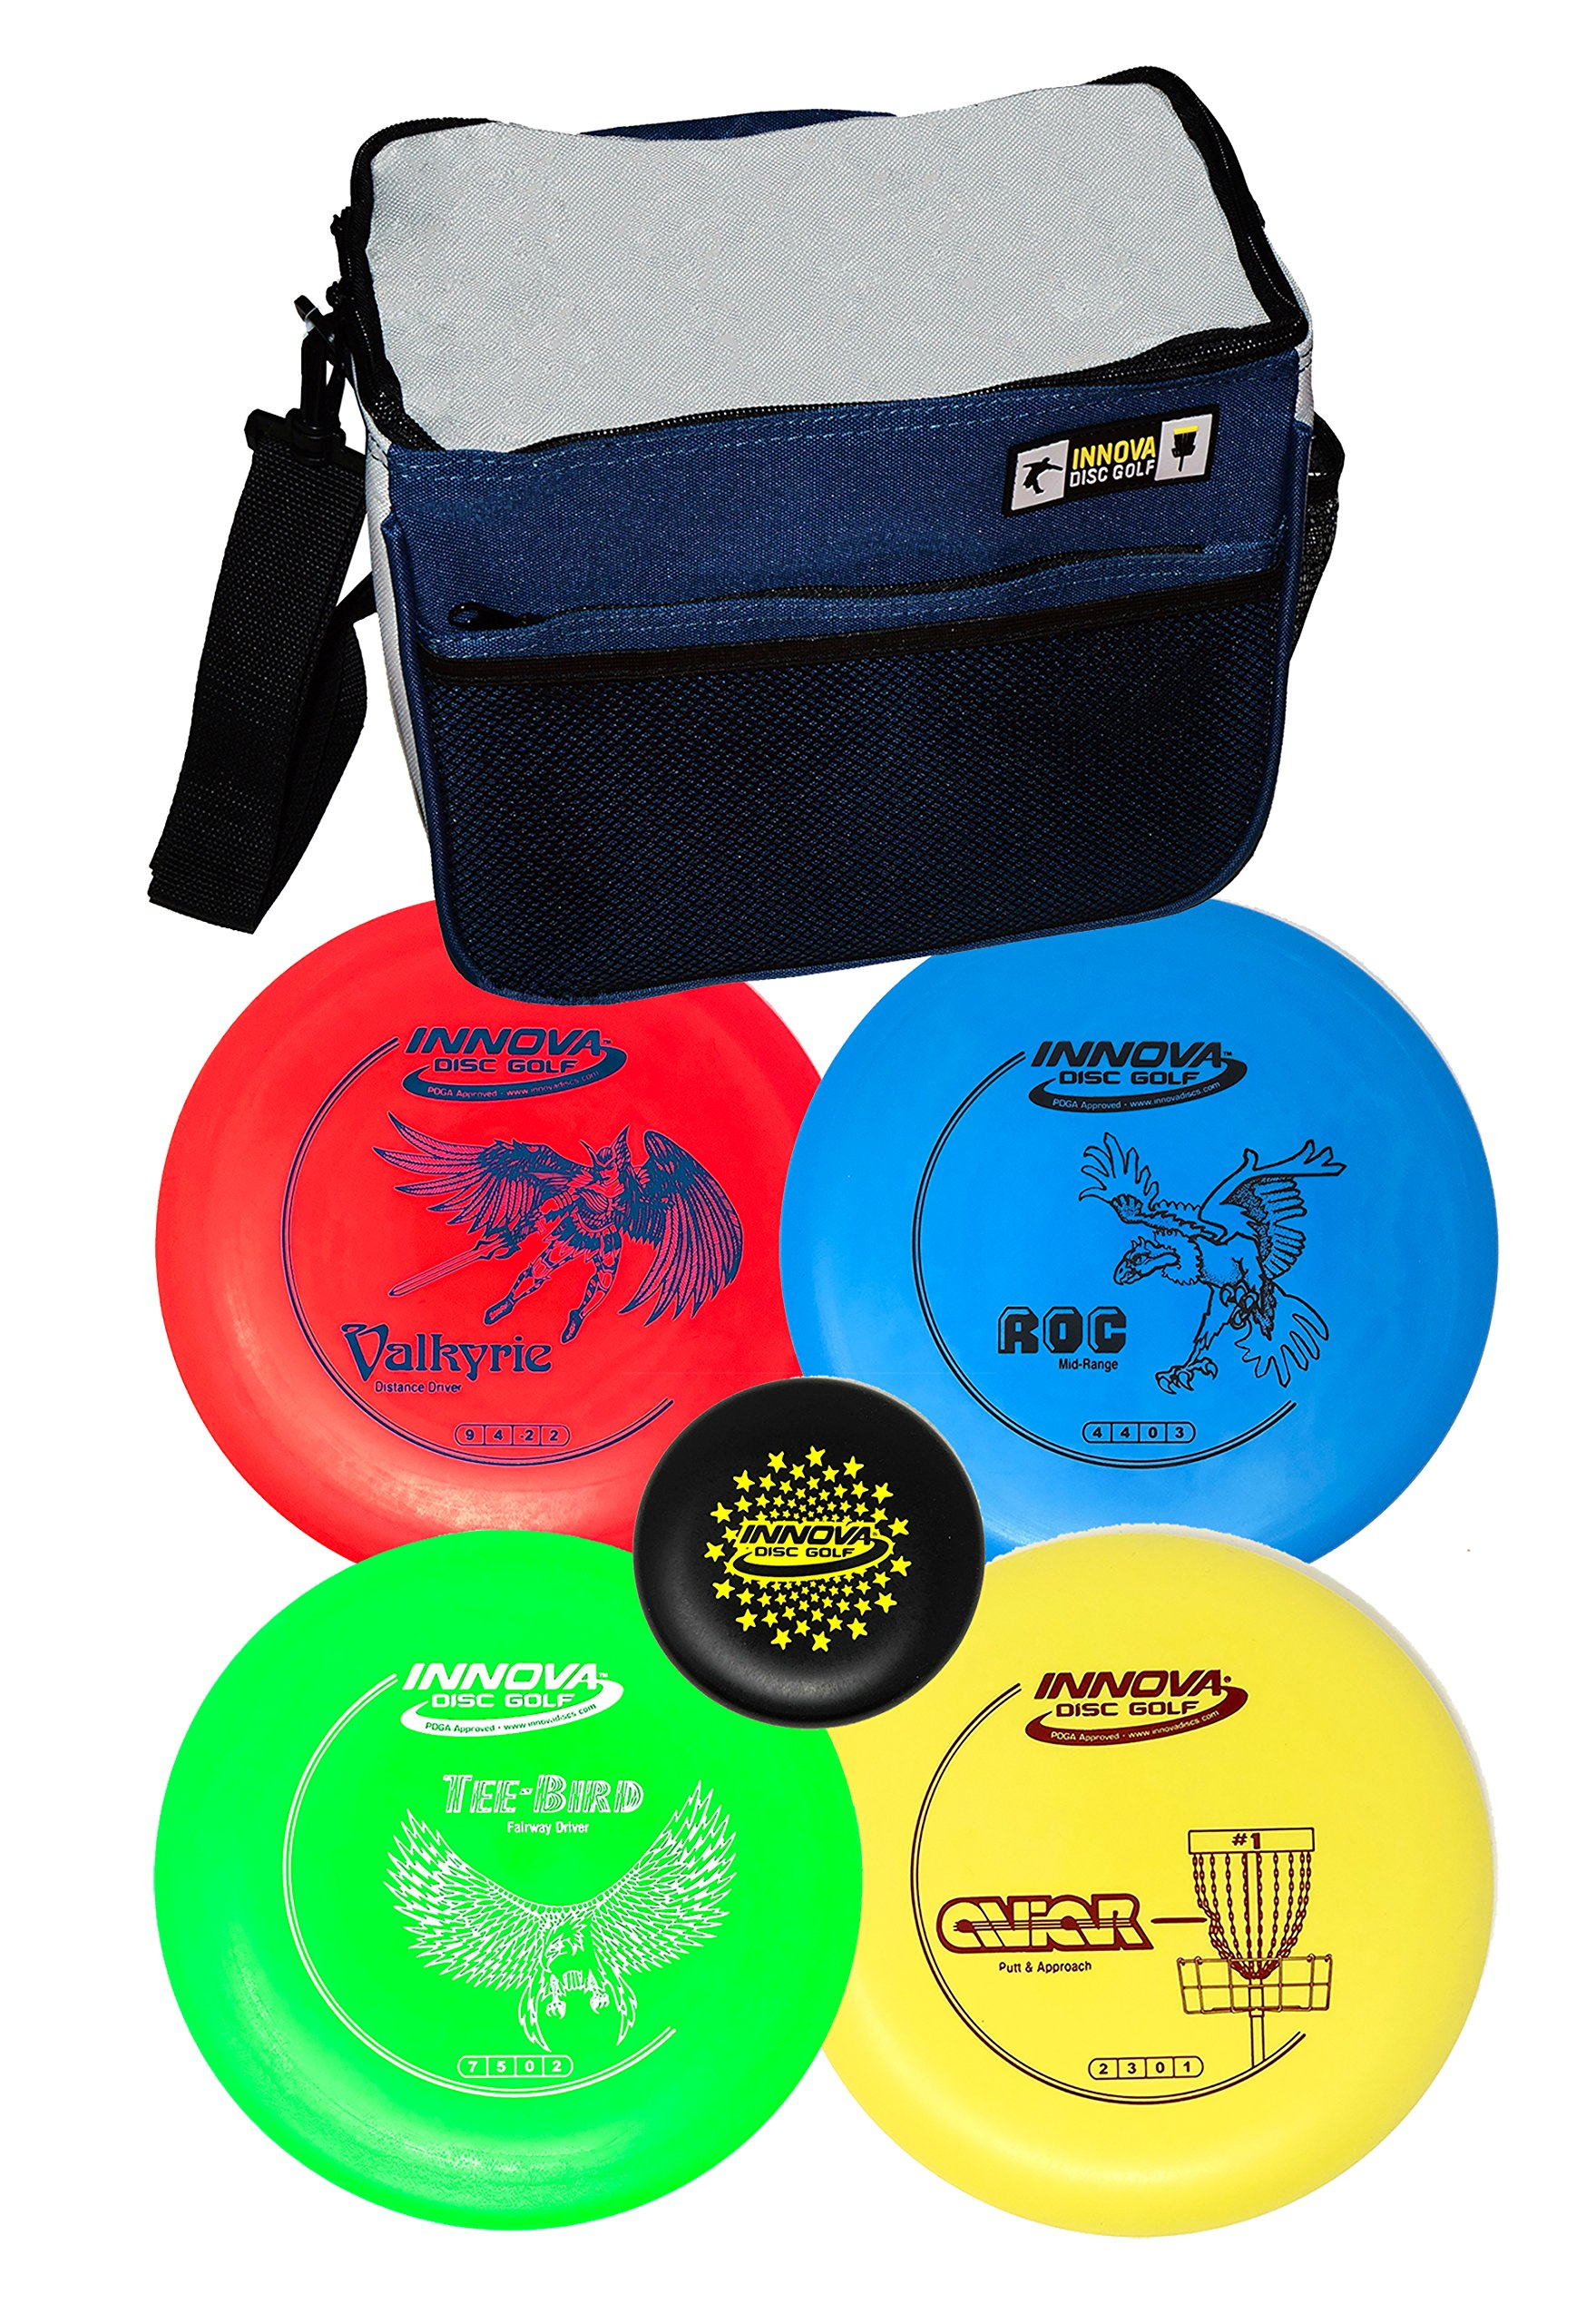 Innova Disc Golf Set with 4 Discs Starter Disc Golf Bag - DX Distance Driver, Fairway Driver, Mid-Range, Putter and Mini Marker Disc by INNOVA